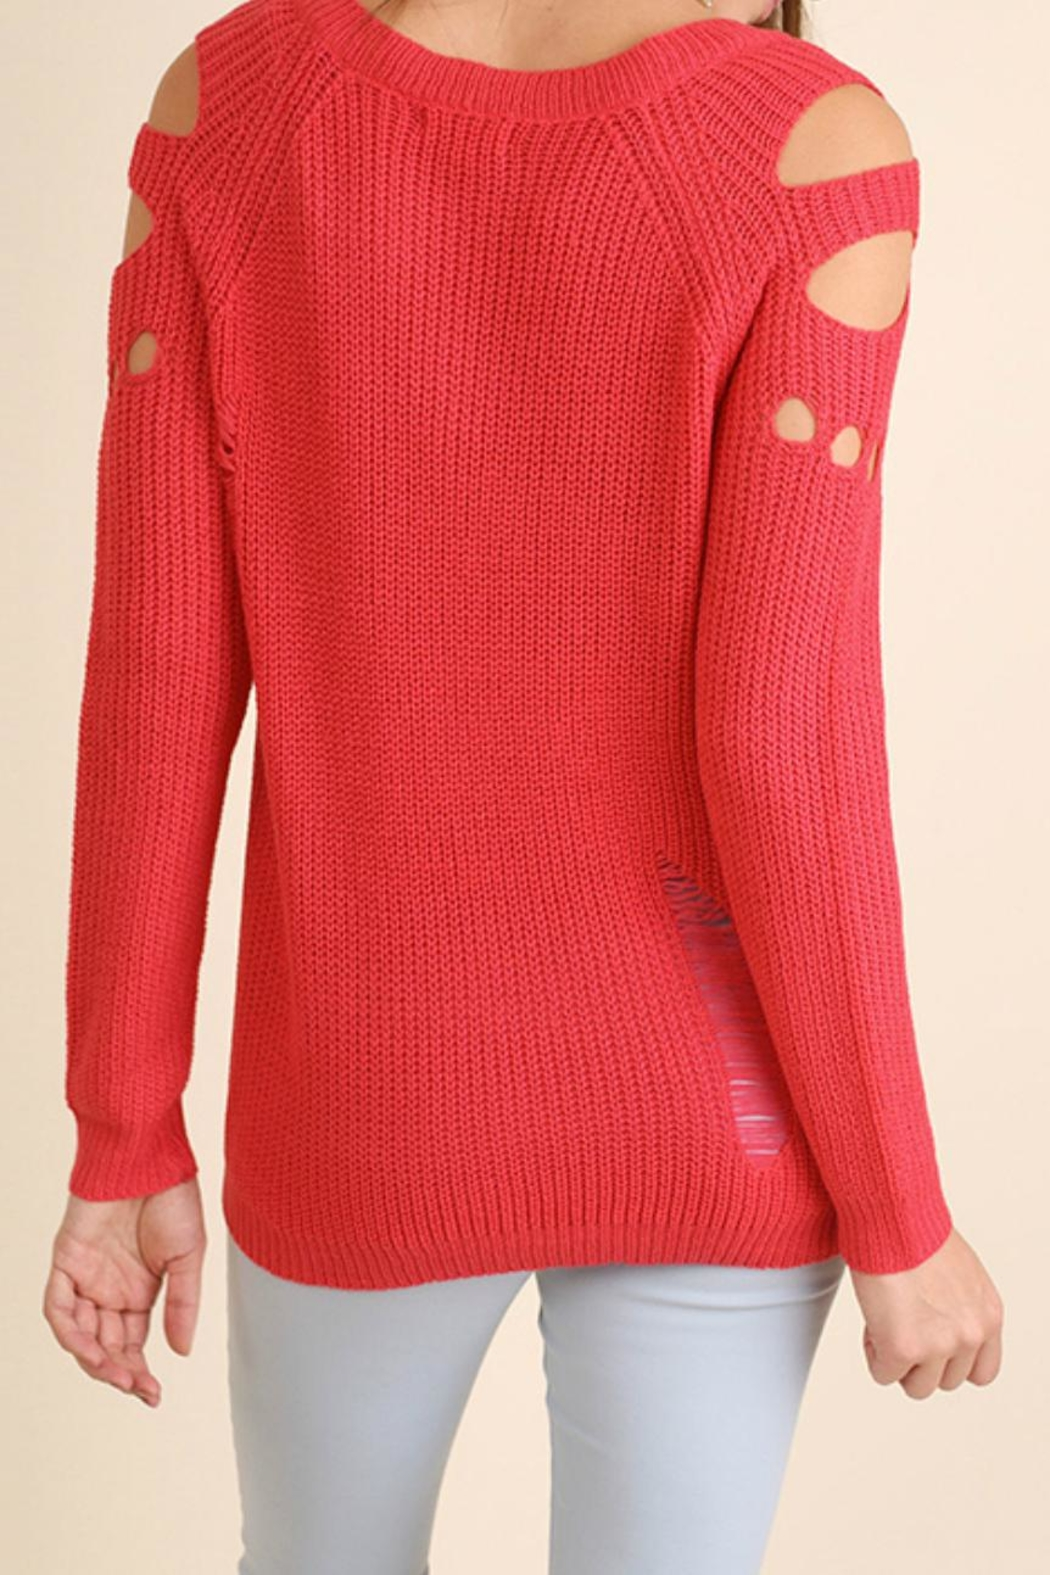 Umgee USA Distressed Cutout Sweater - Front Full Image